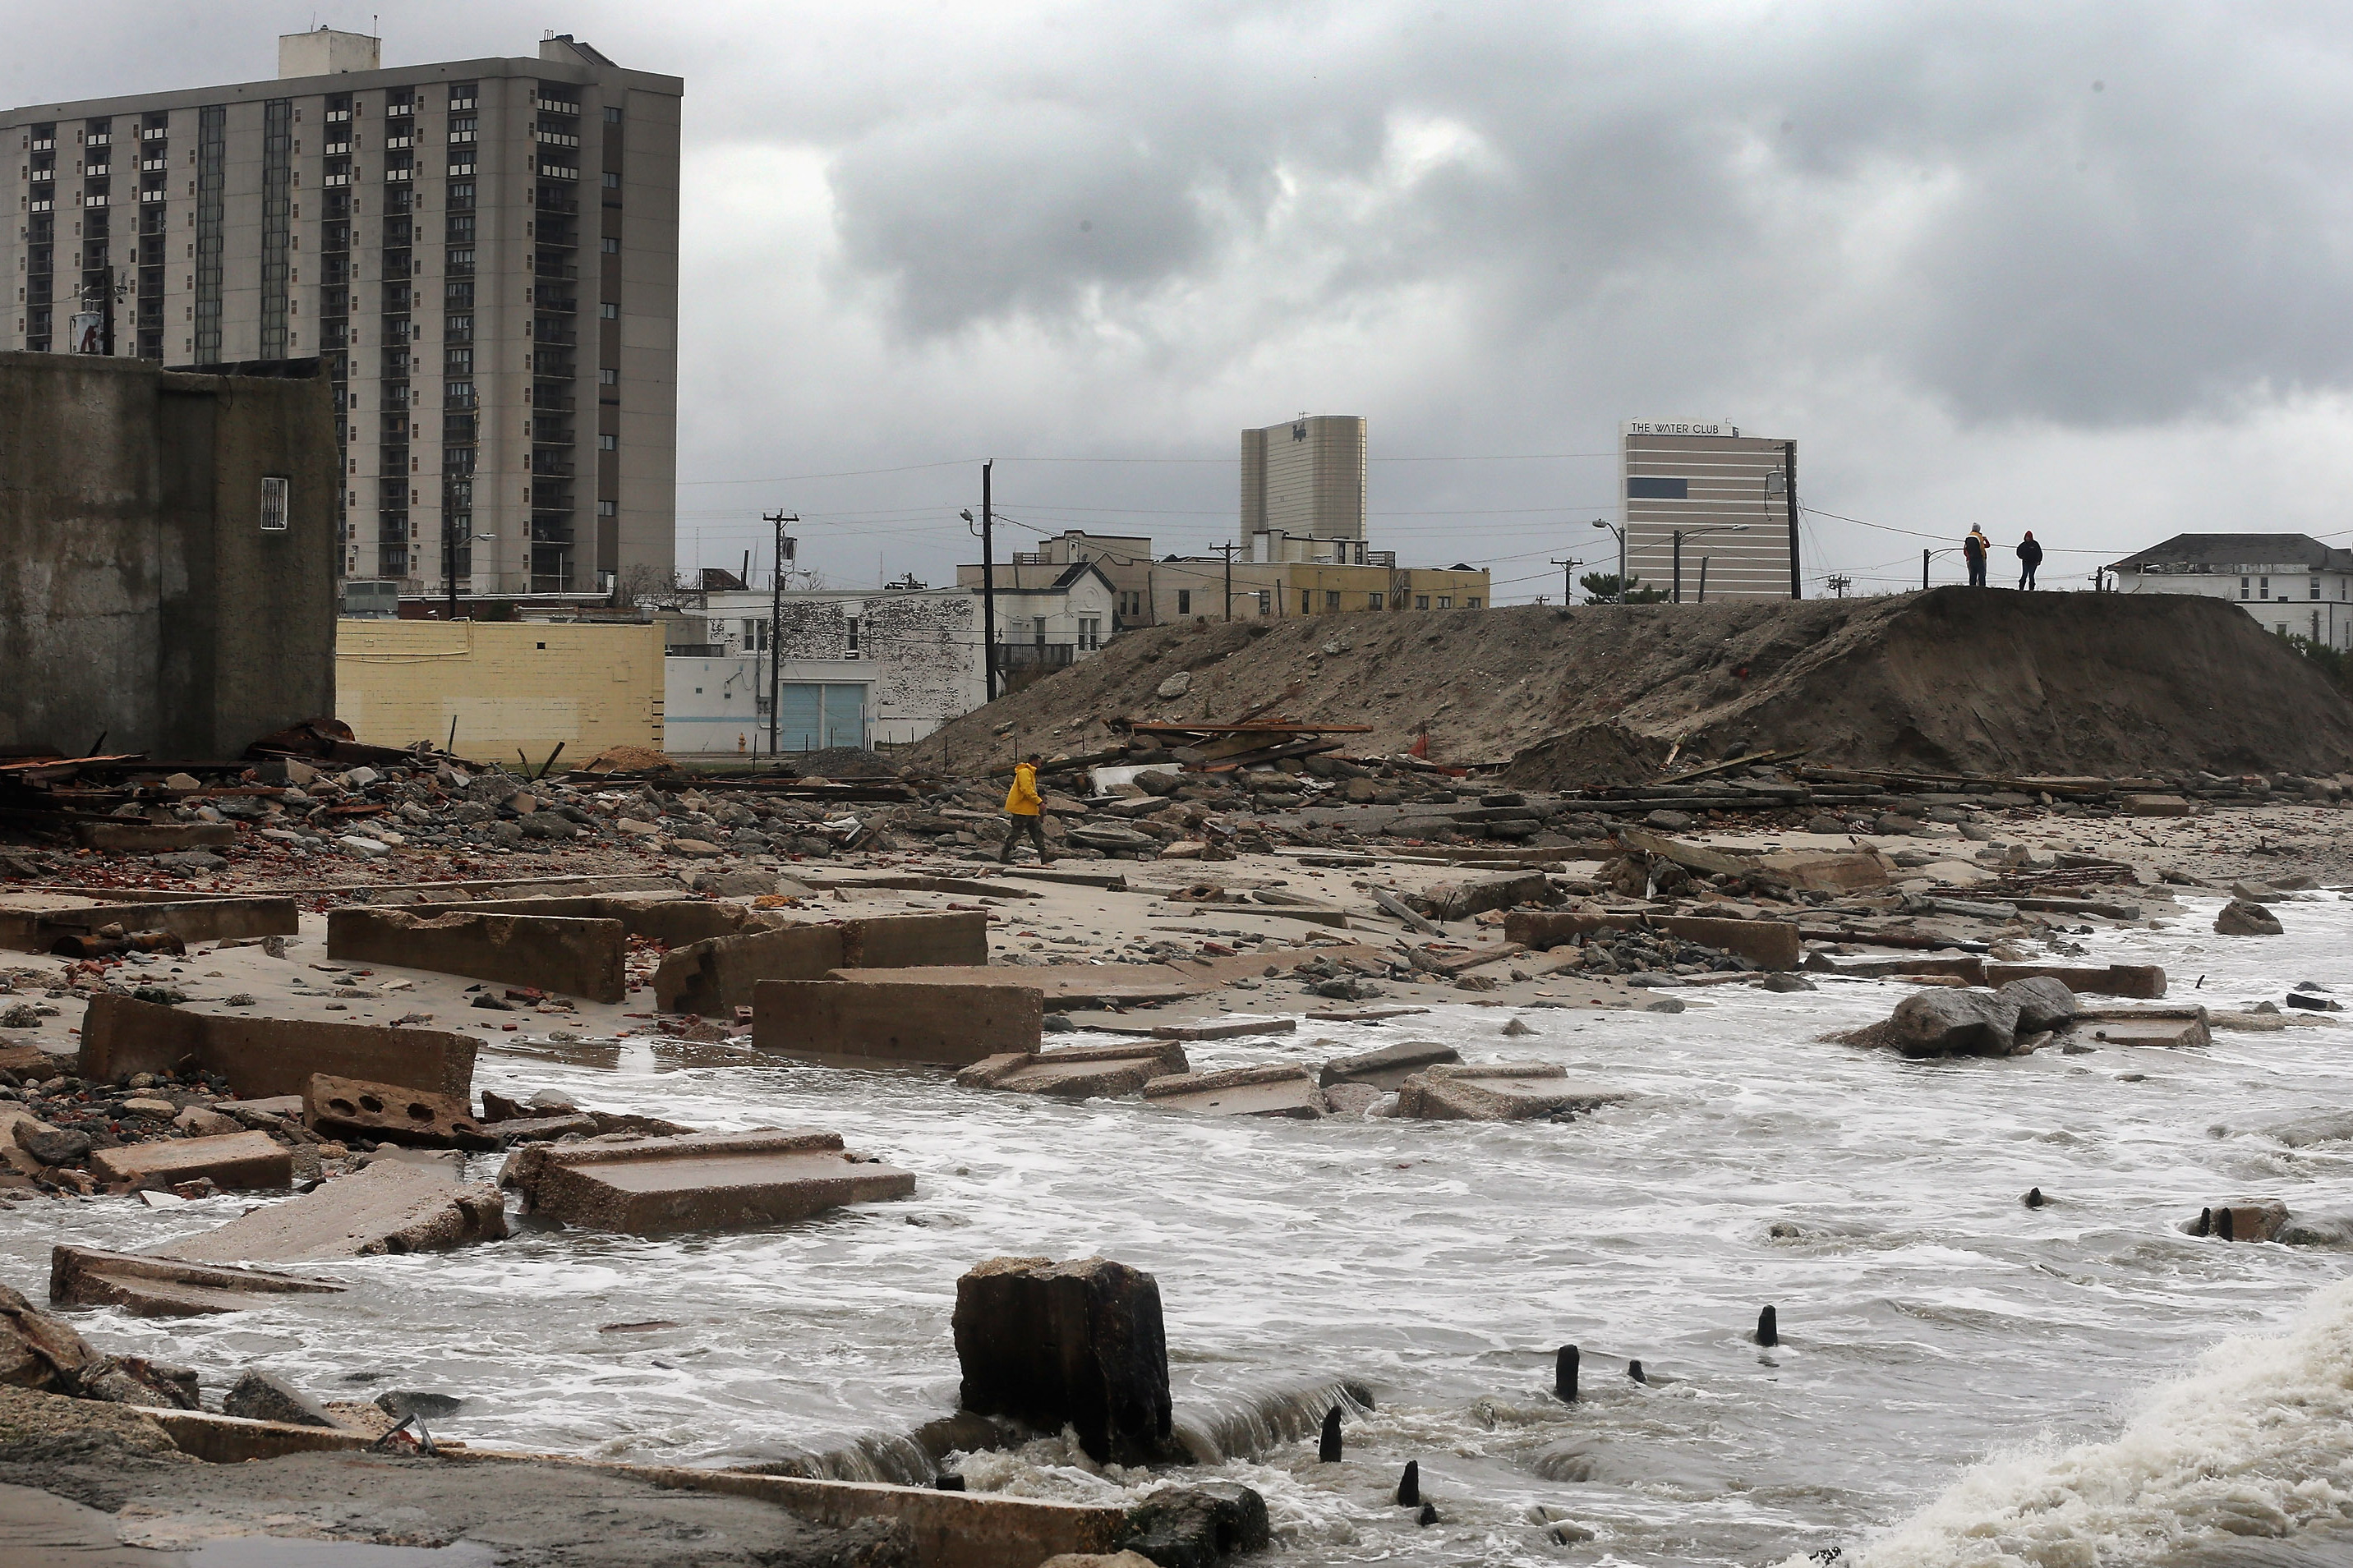 In Atlantic City, NJ, people stand on a mound of construction dirt to view the area where a 2,000-foot section of the 'uptown' boardwalk was destroyed by flooding from Hurricane Sandy. The storm has claimed more than 30 lives and has caused massive flooding across much of the Atlantic seaboard.